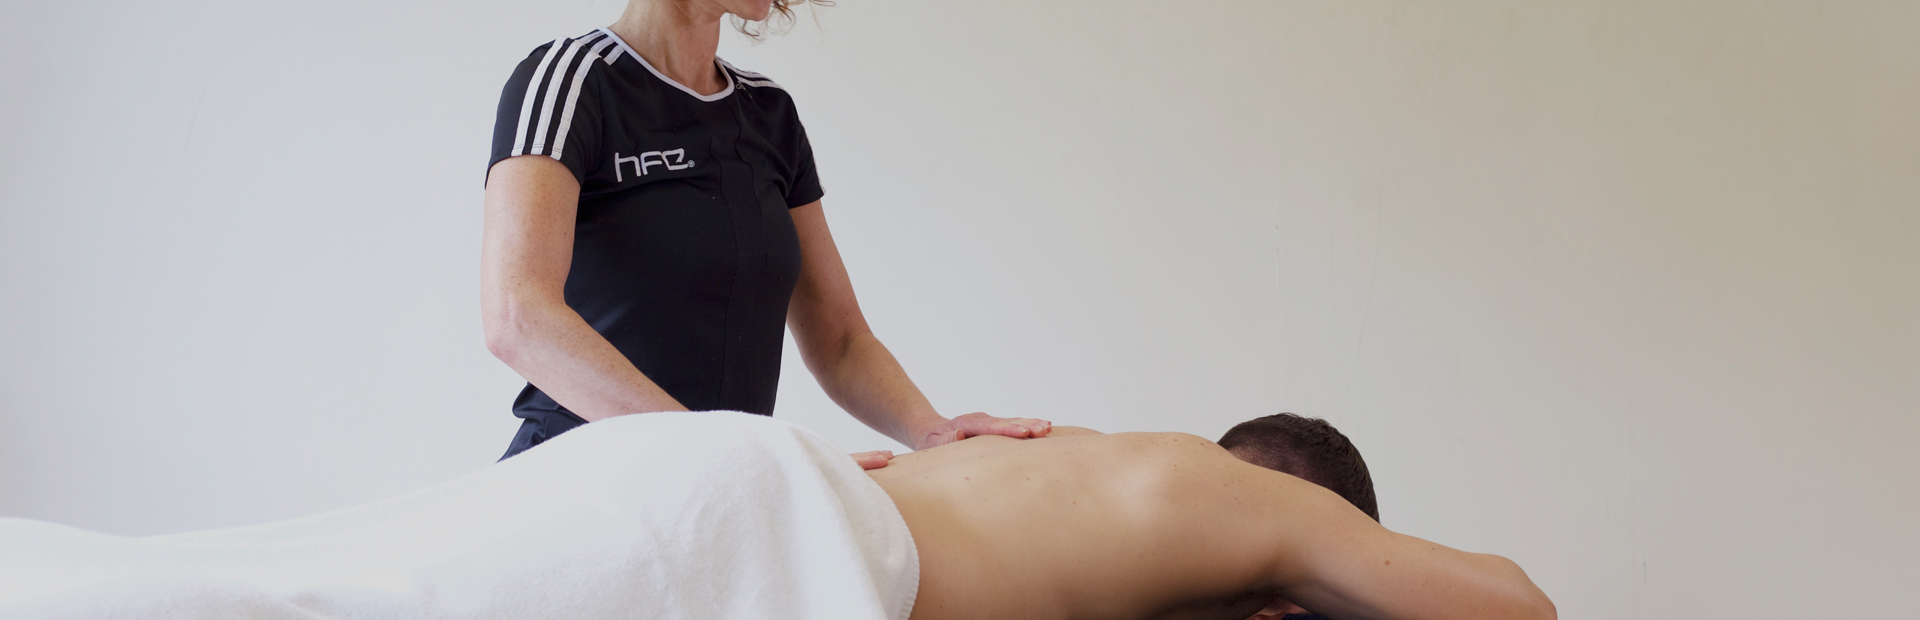 HFE qualified sports massage therapist working on a client